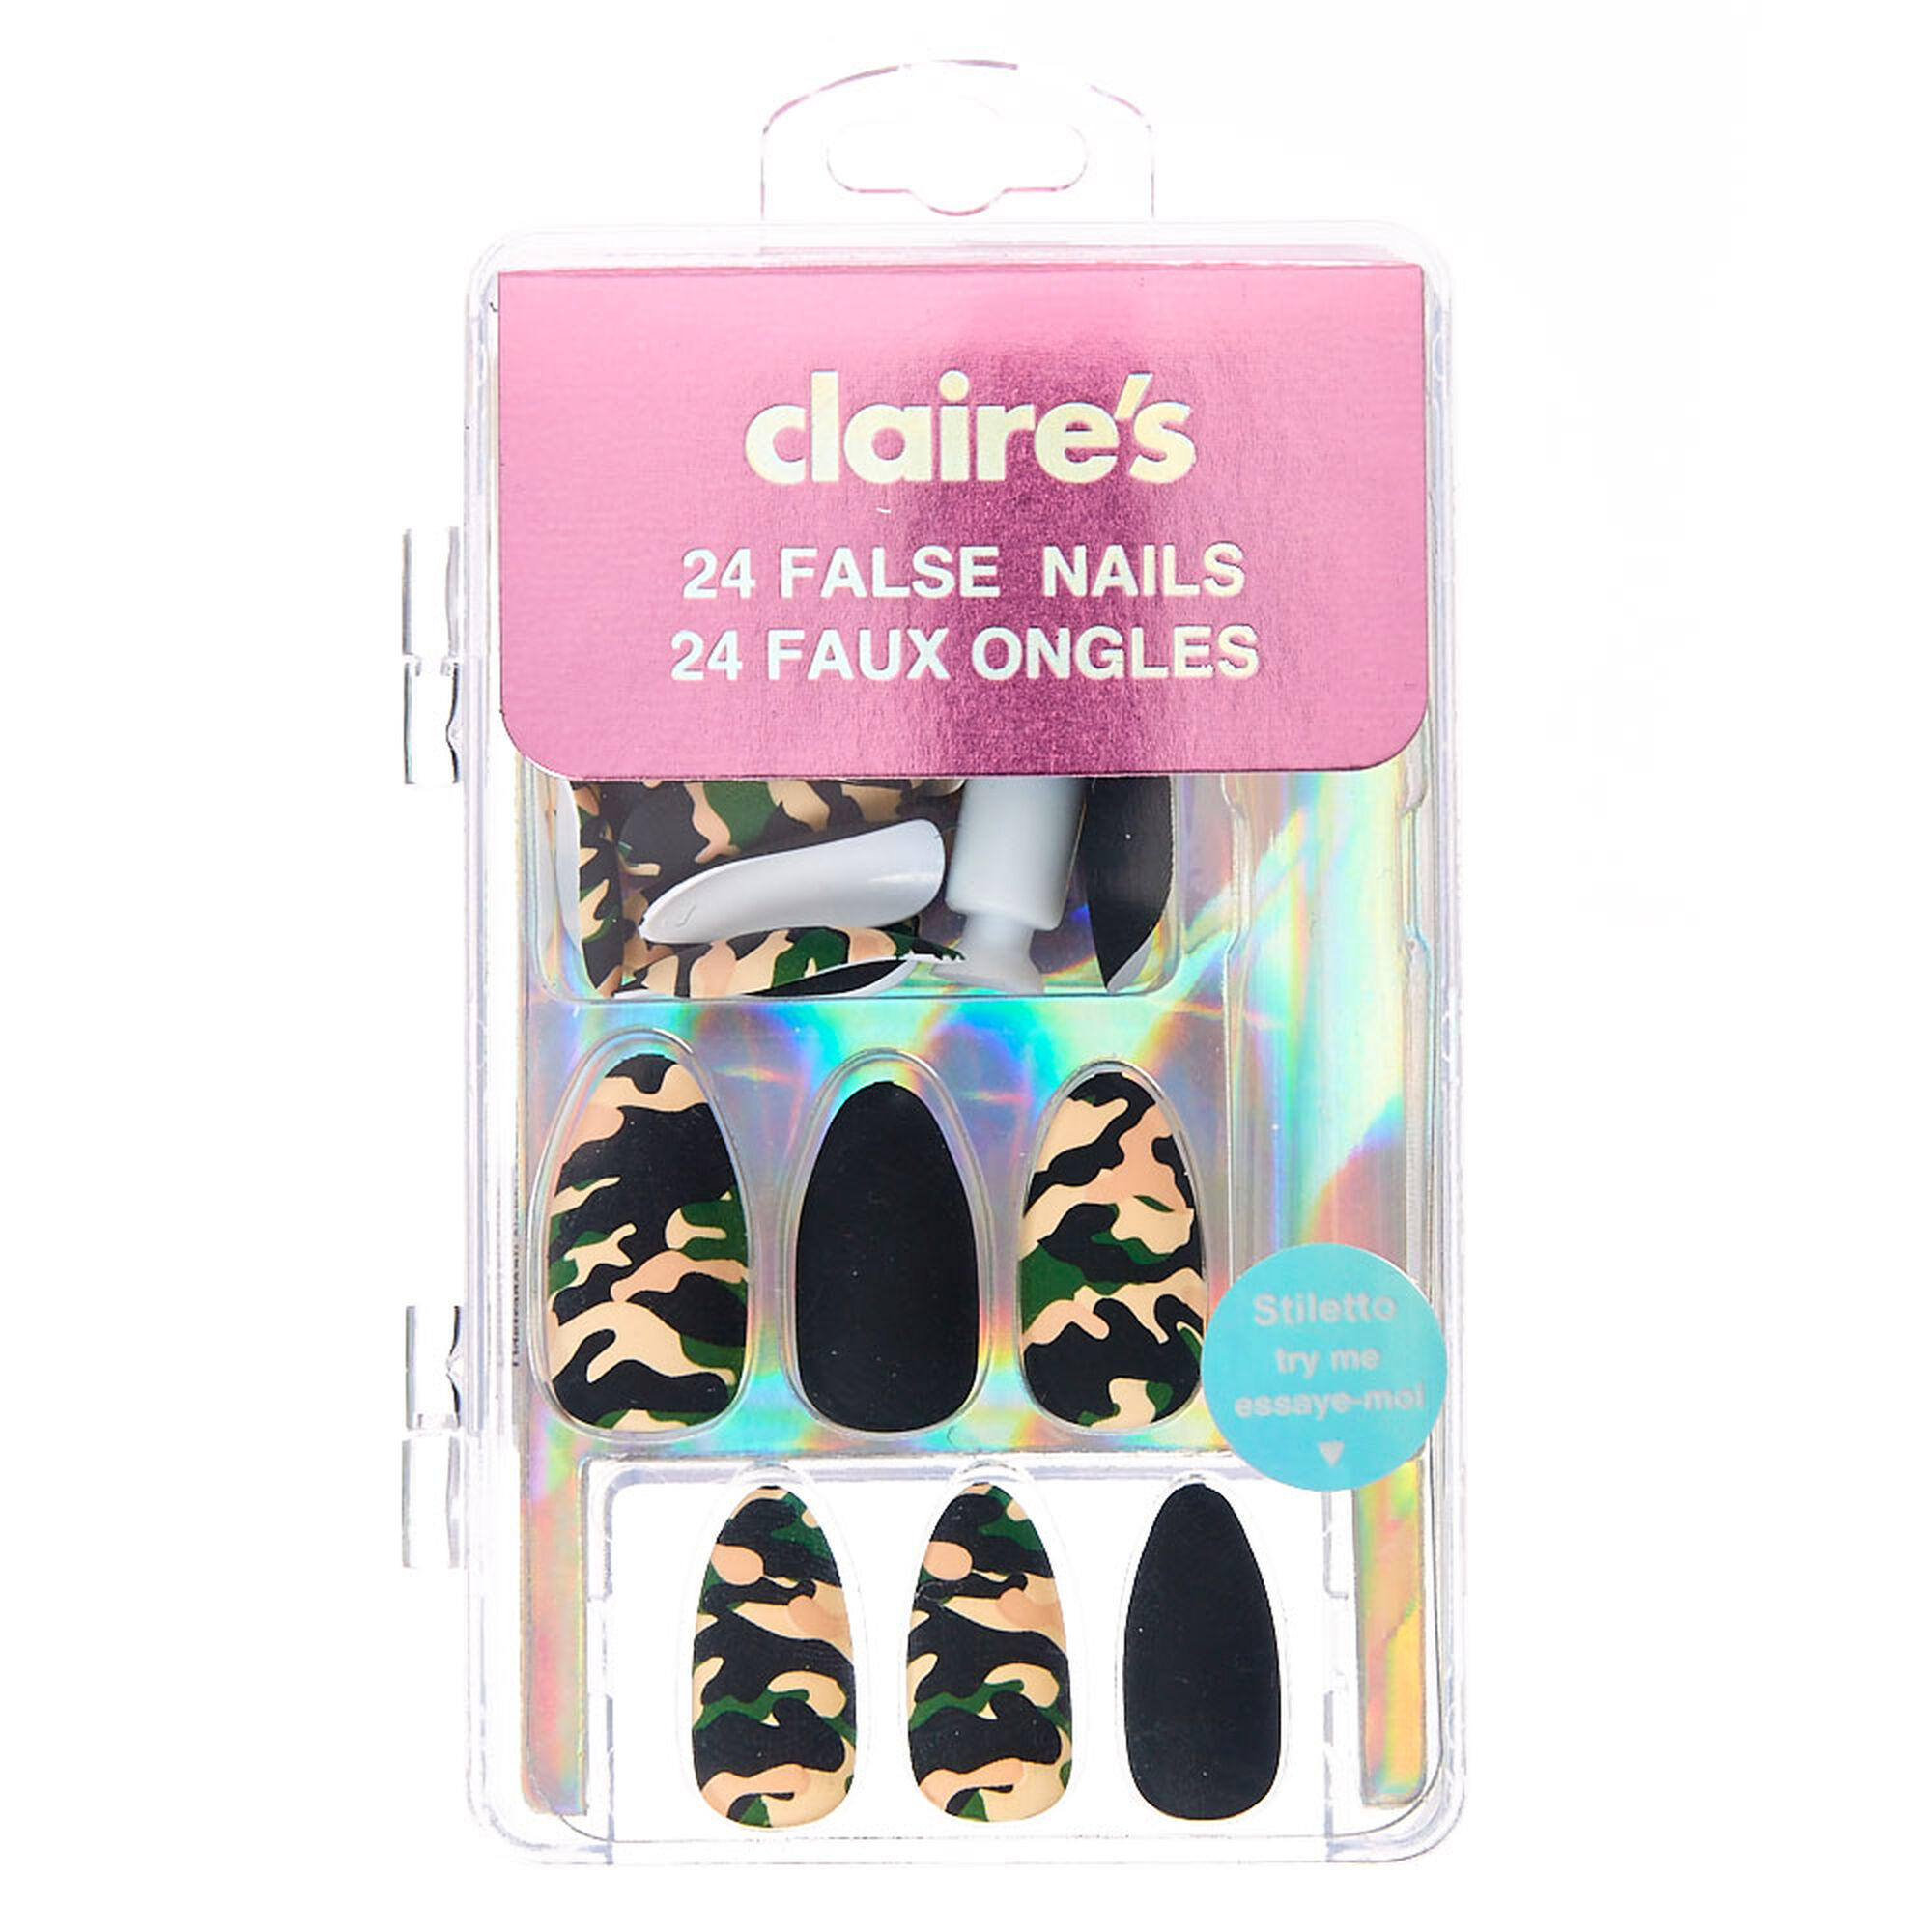 faux ongles stiletto mats motif camouflage claire 39 s fr. Black Bedroom Furniture Sets. Home Design Ideas